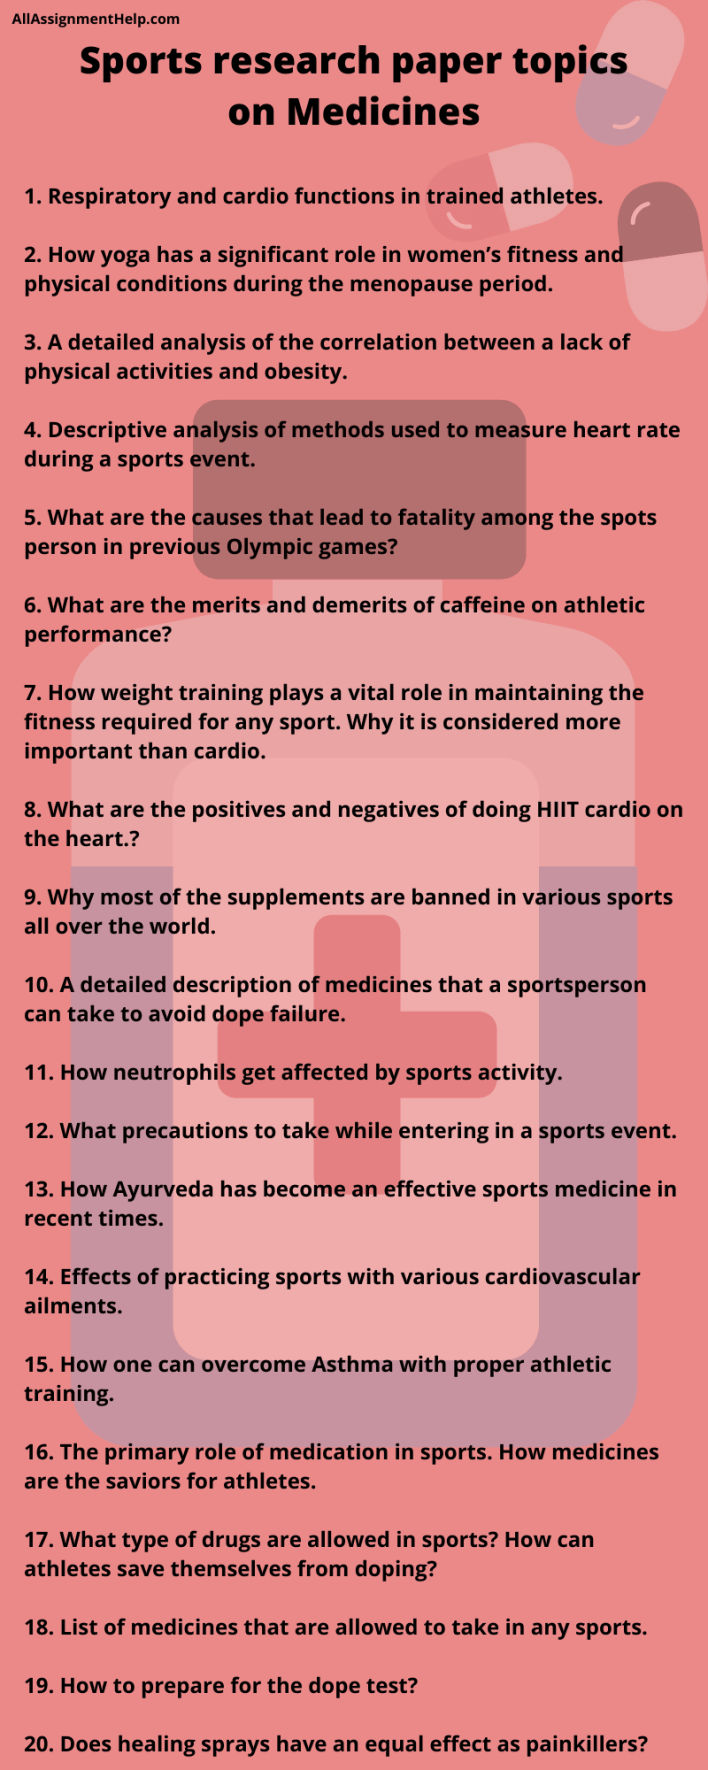 sports-research-paper-topics-medicine